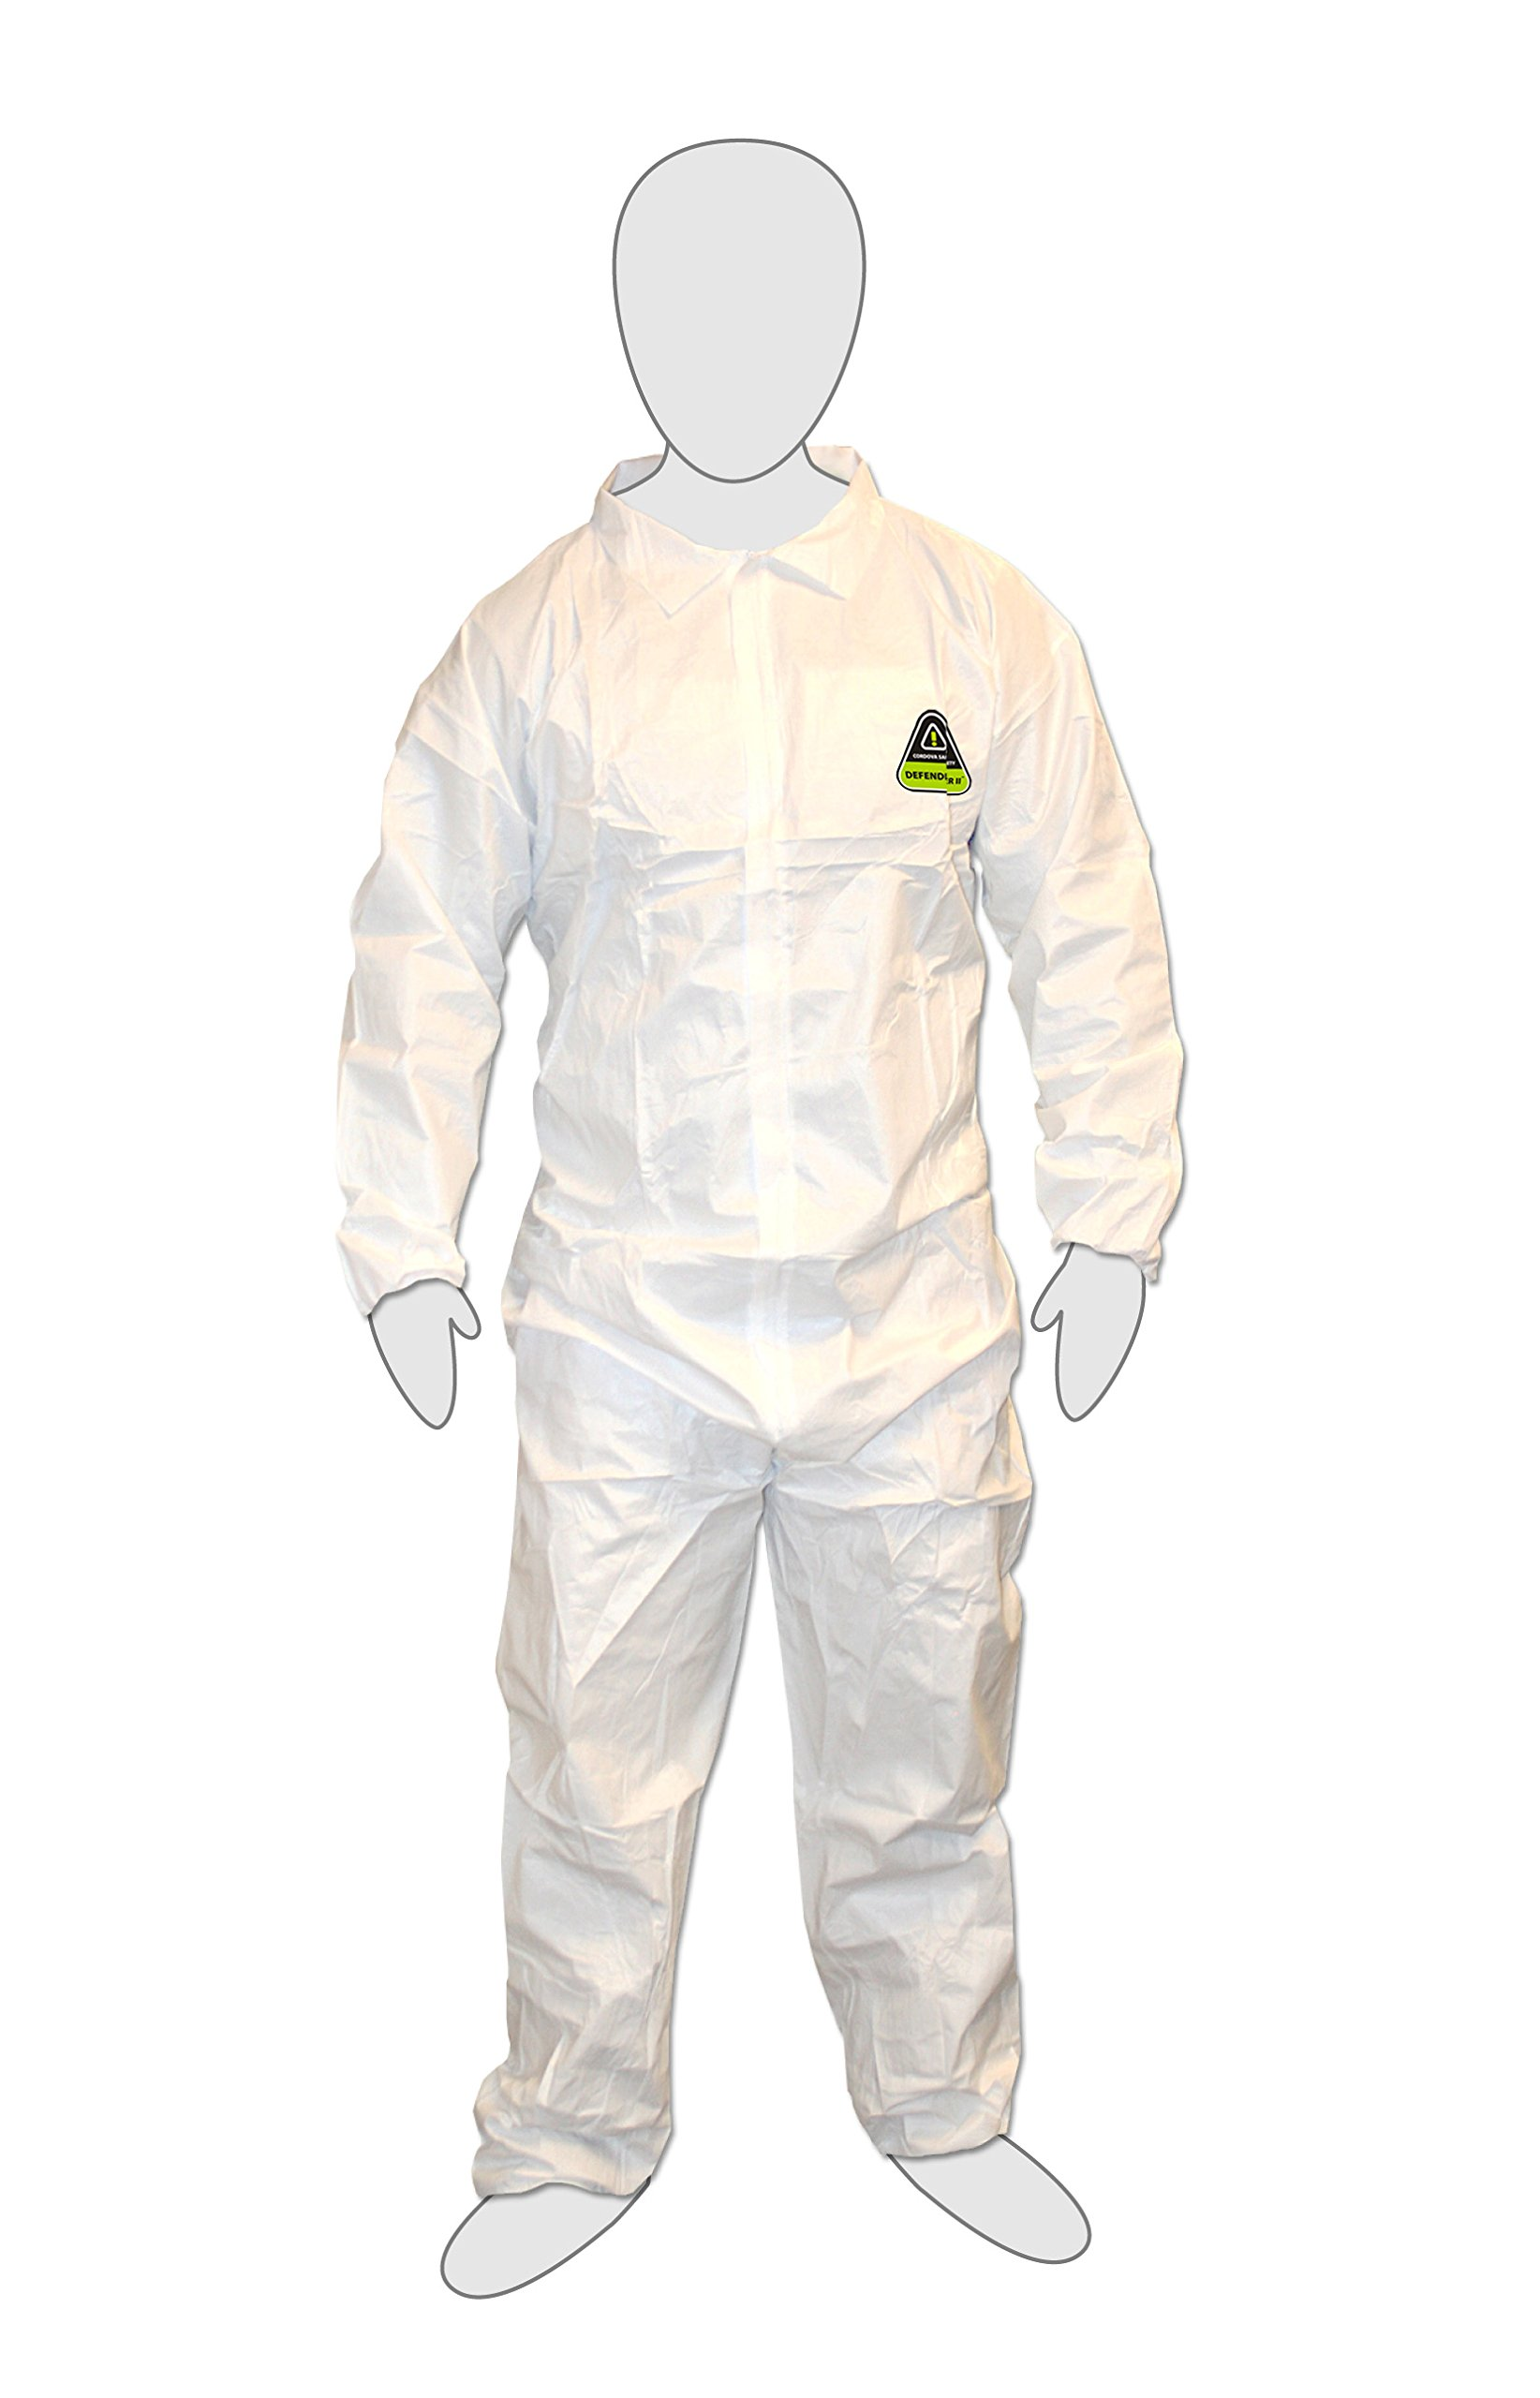 Cordova Safety Products MP3002XL 25 Piece Defender II Standard Microporous Disposable Coveralls with Hood, XX-Large, White by Cordova Safety Products (Image #1)